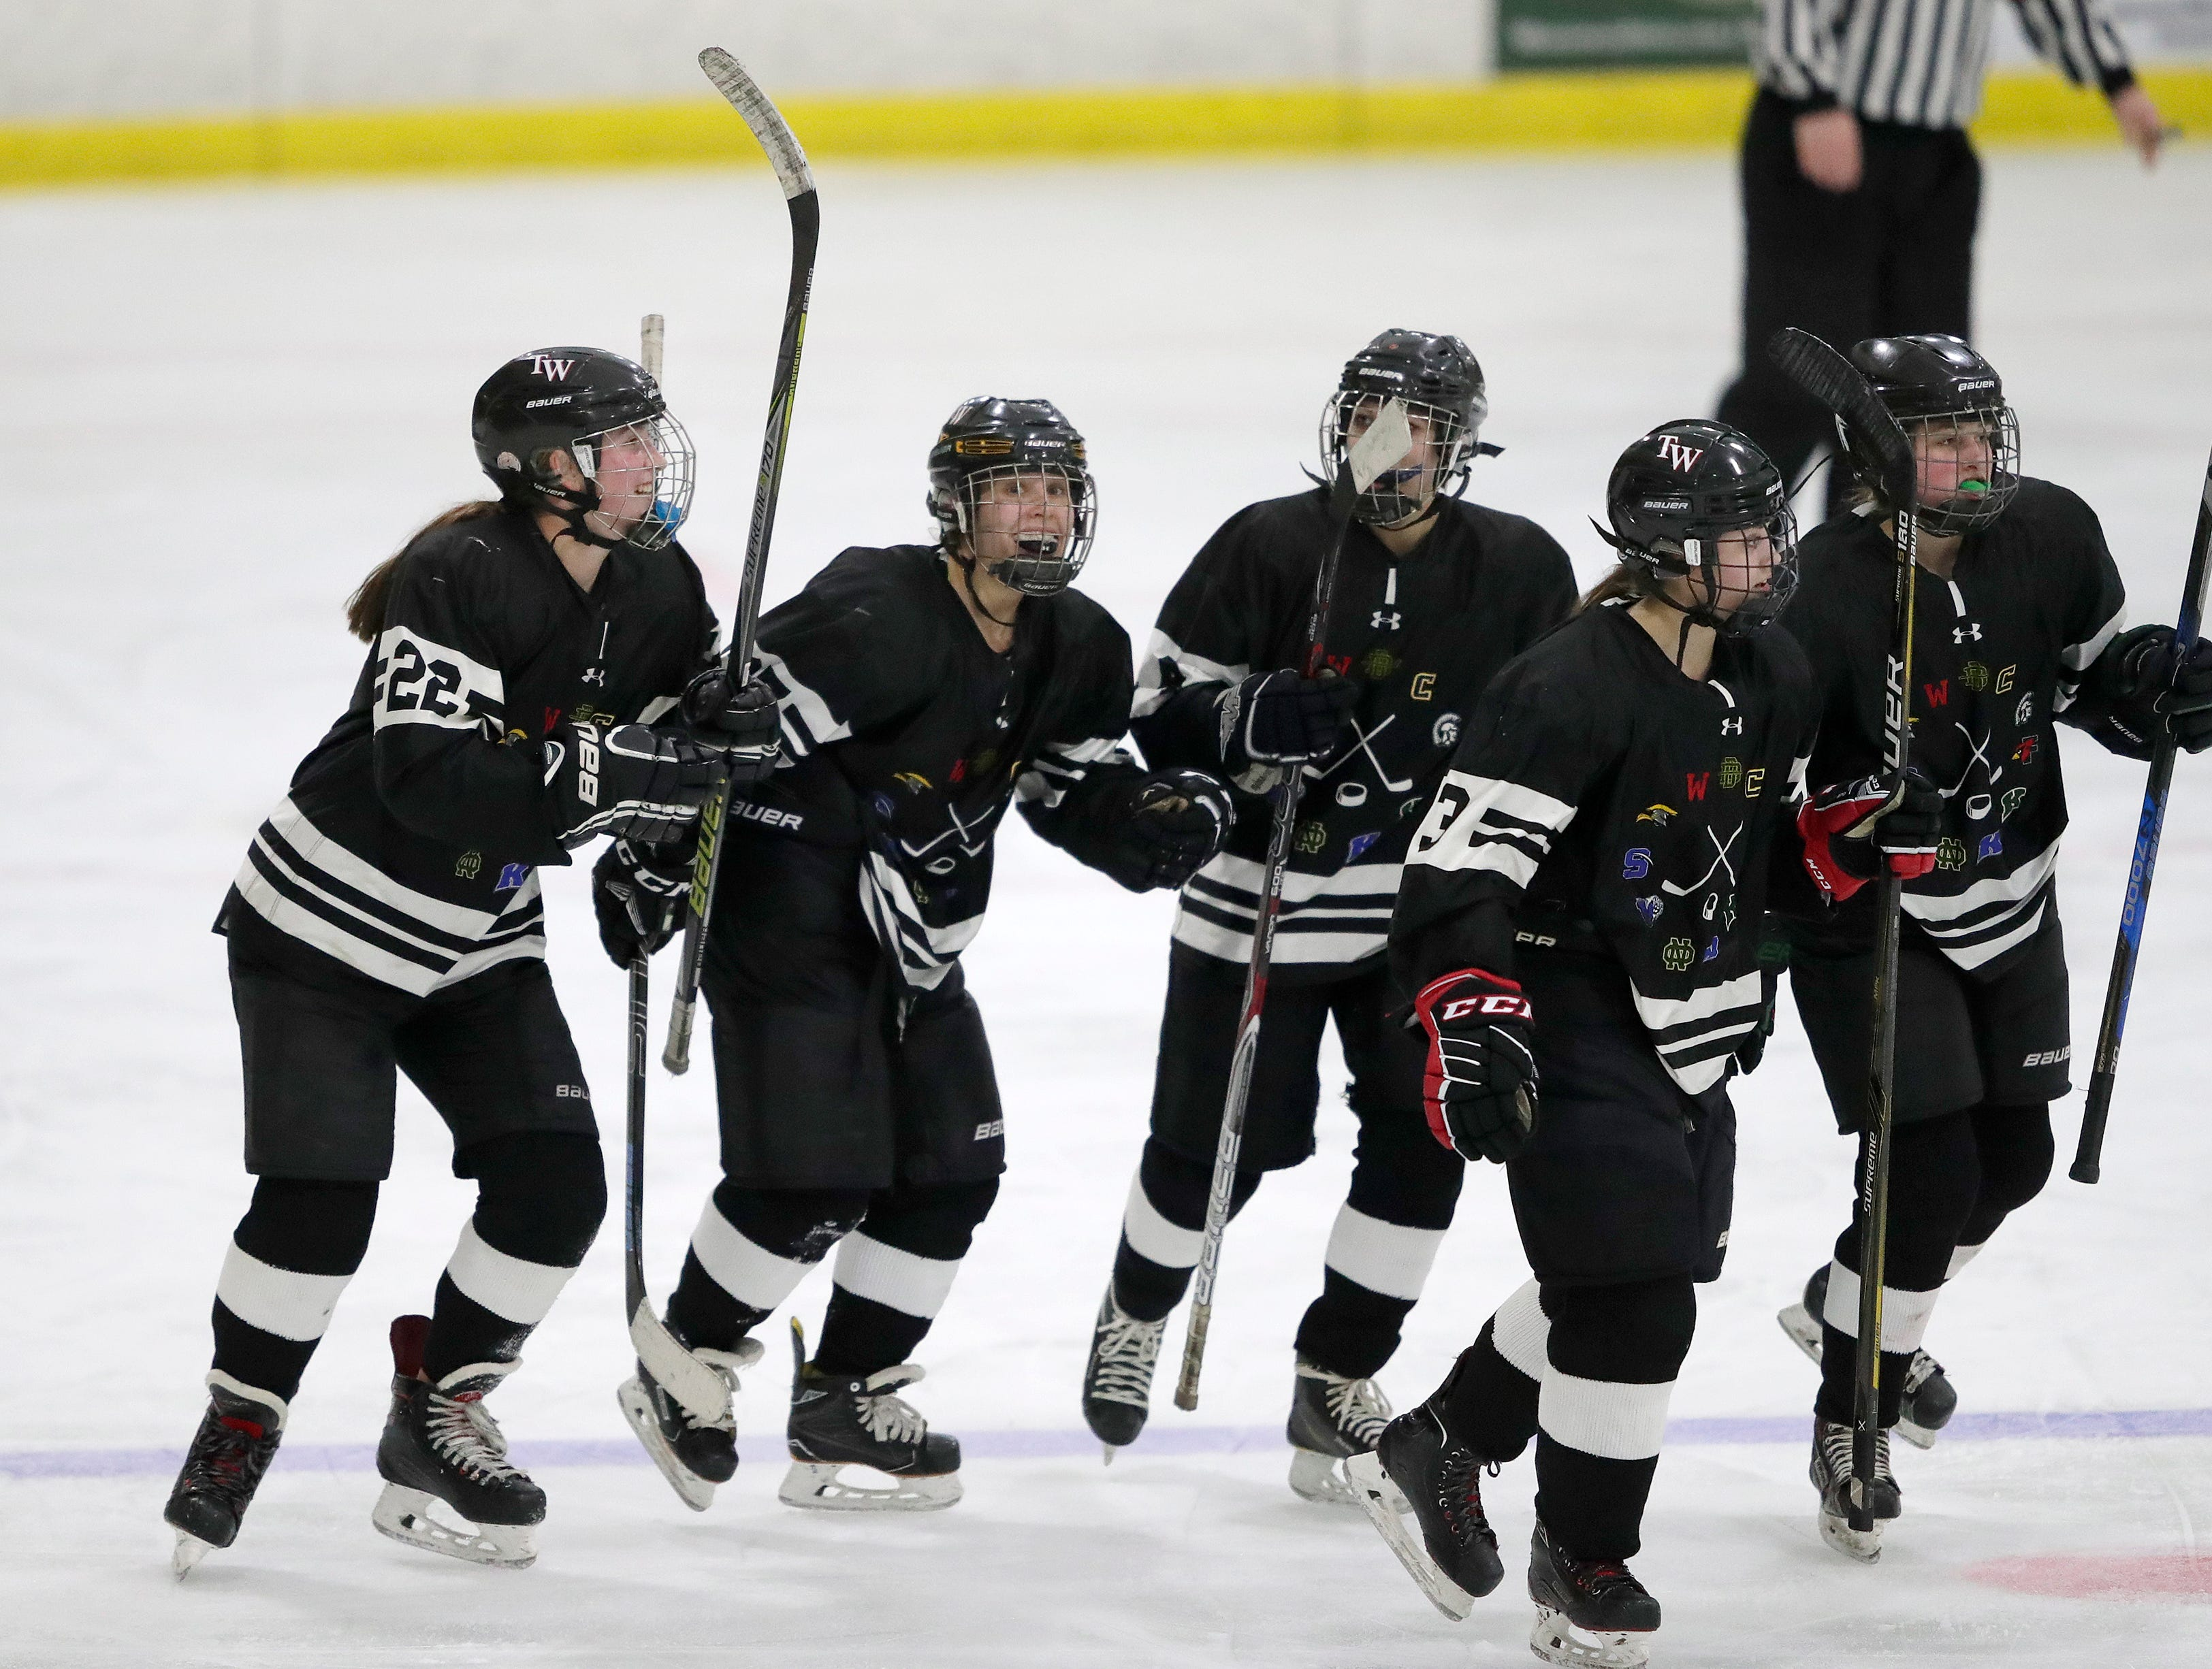 The Warbirds' Alyssa Heim, second from left,celebrates scoring a goal with teammates against Fox Cities Stars' Hattie Berndt (33) during their girls hockey game Thursday, January 10, 2019, at Tri-County Ice Arena in Fox Crossing, Wis. 